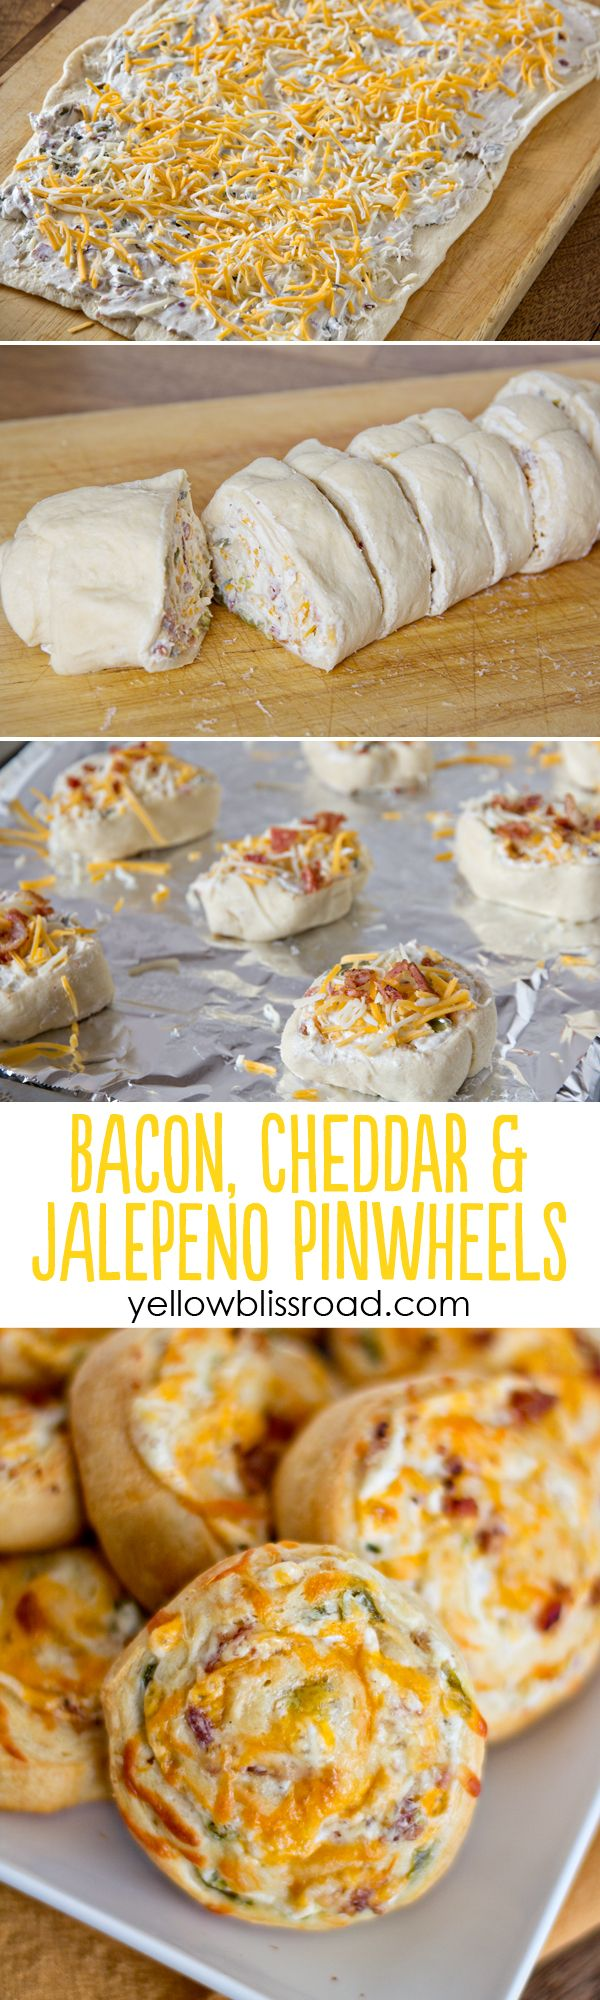 Bacon, Cheddar & Jalapeño Pinwheels.. makes me think of bacon wrapped jalapeños.dude yes